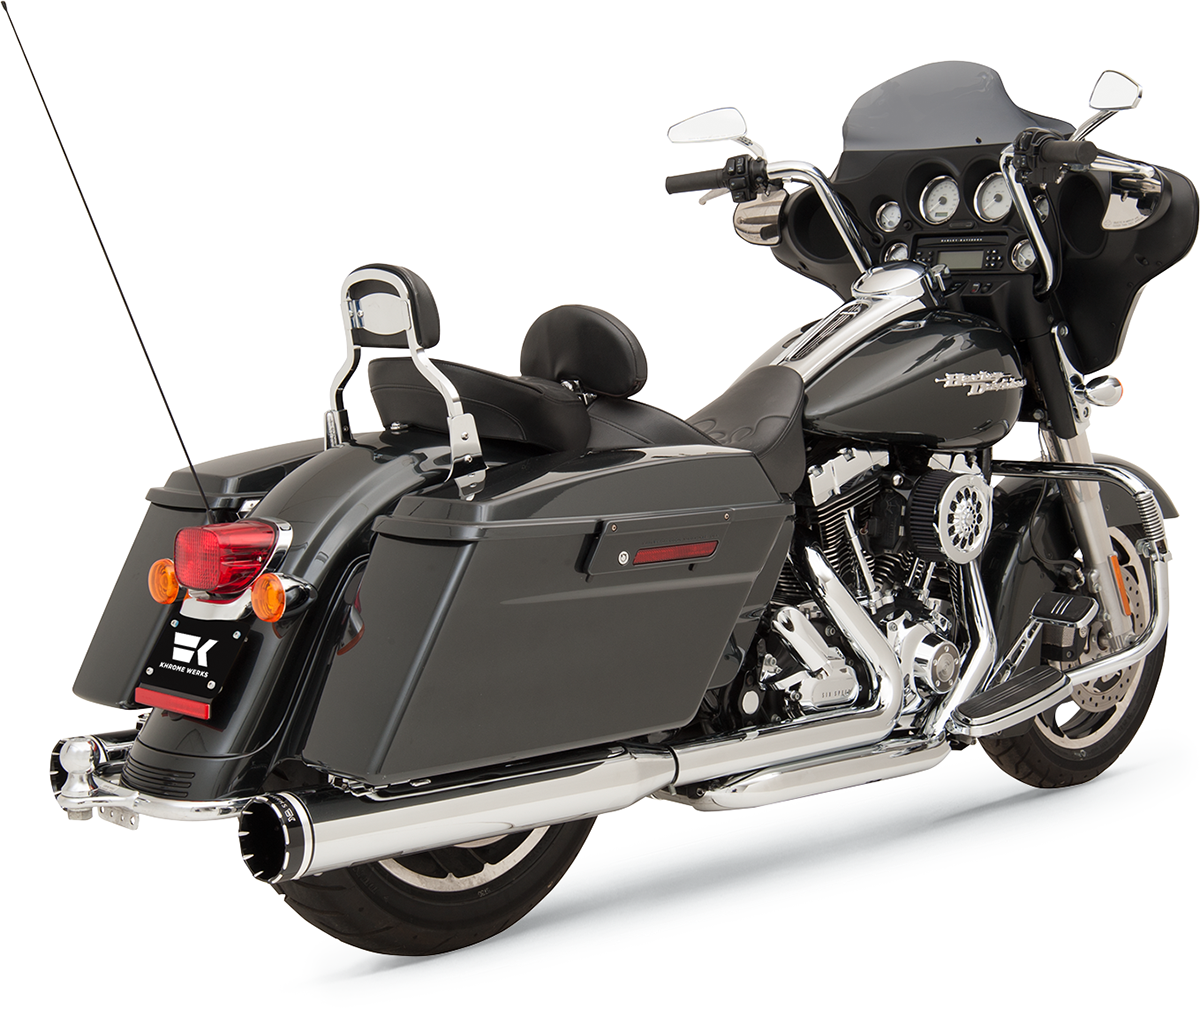 Khrome Werks Chrome Crossover Exhaust System 09 16 Harley